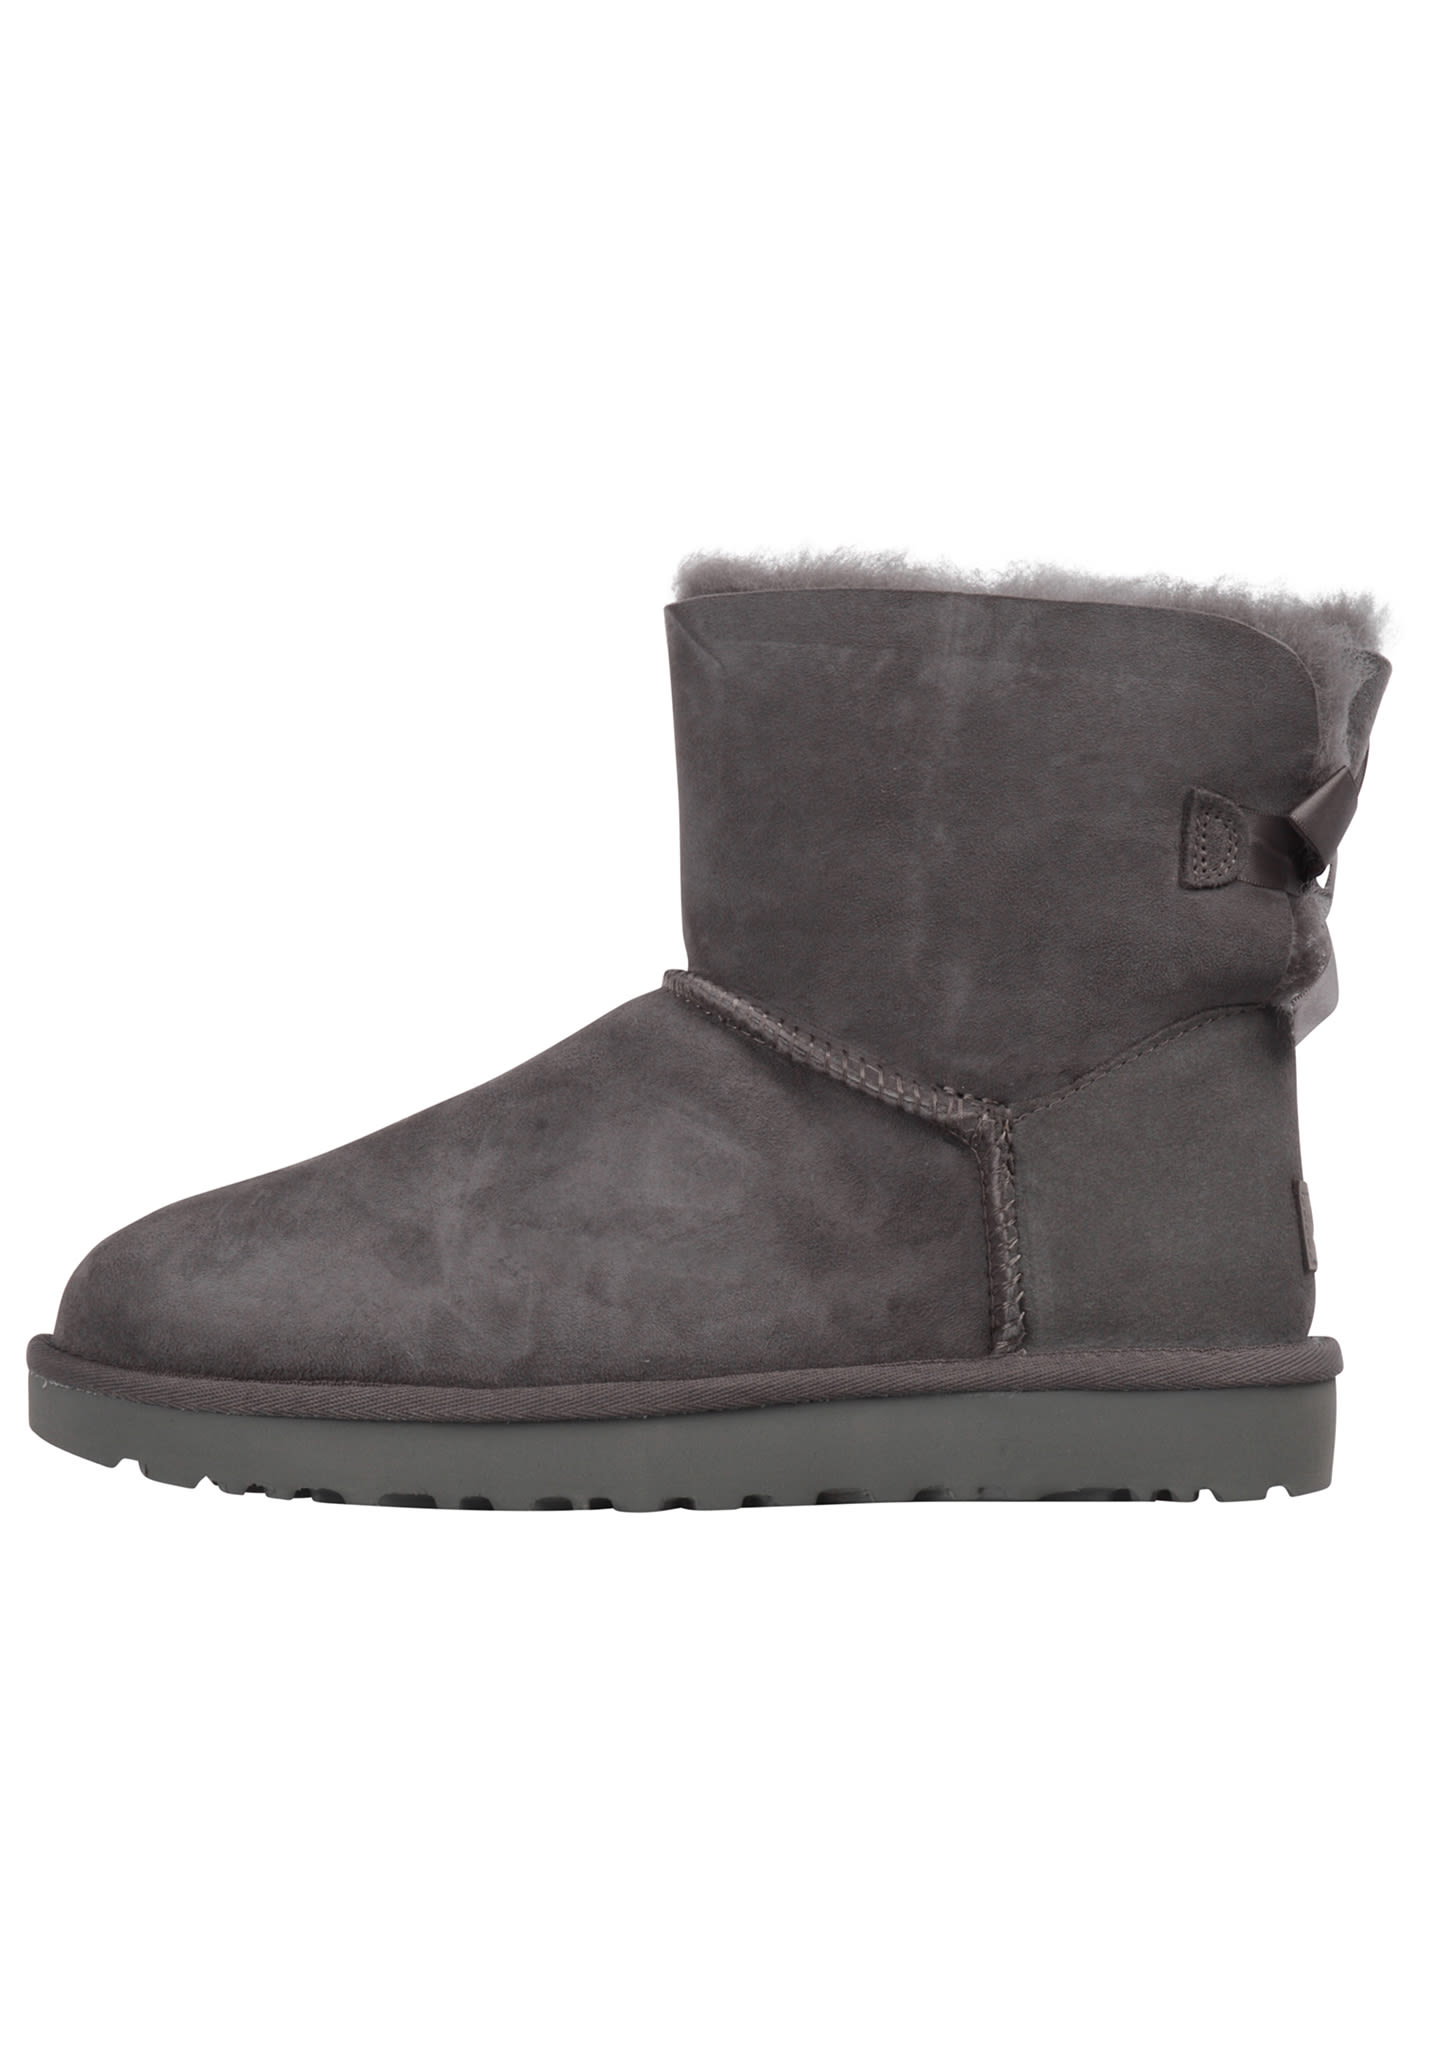 e1165049b83 UGG Mini Bailey Bow II - Boots for Women - Grey